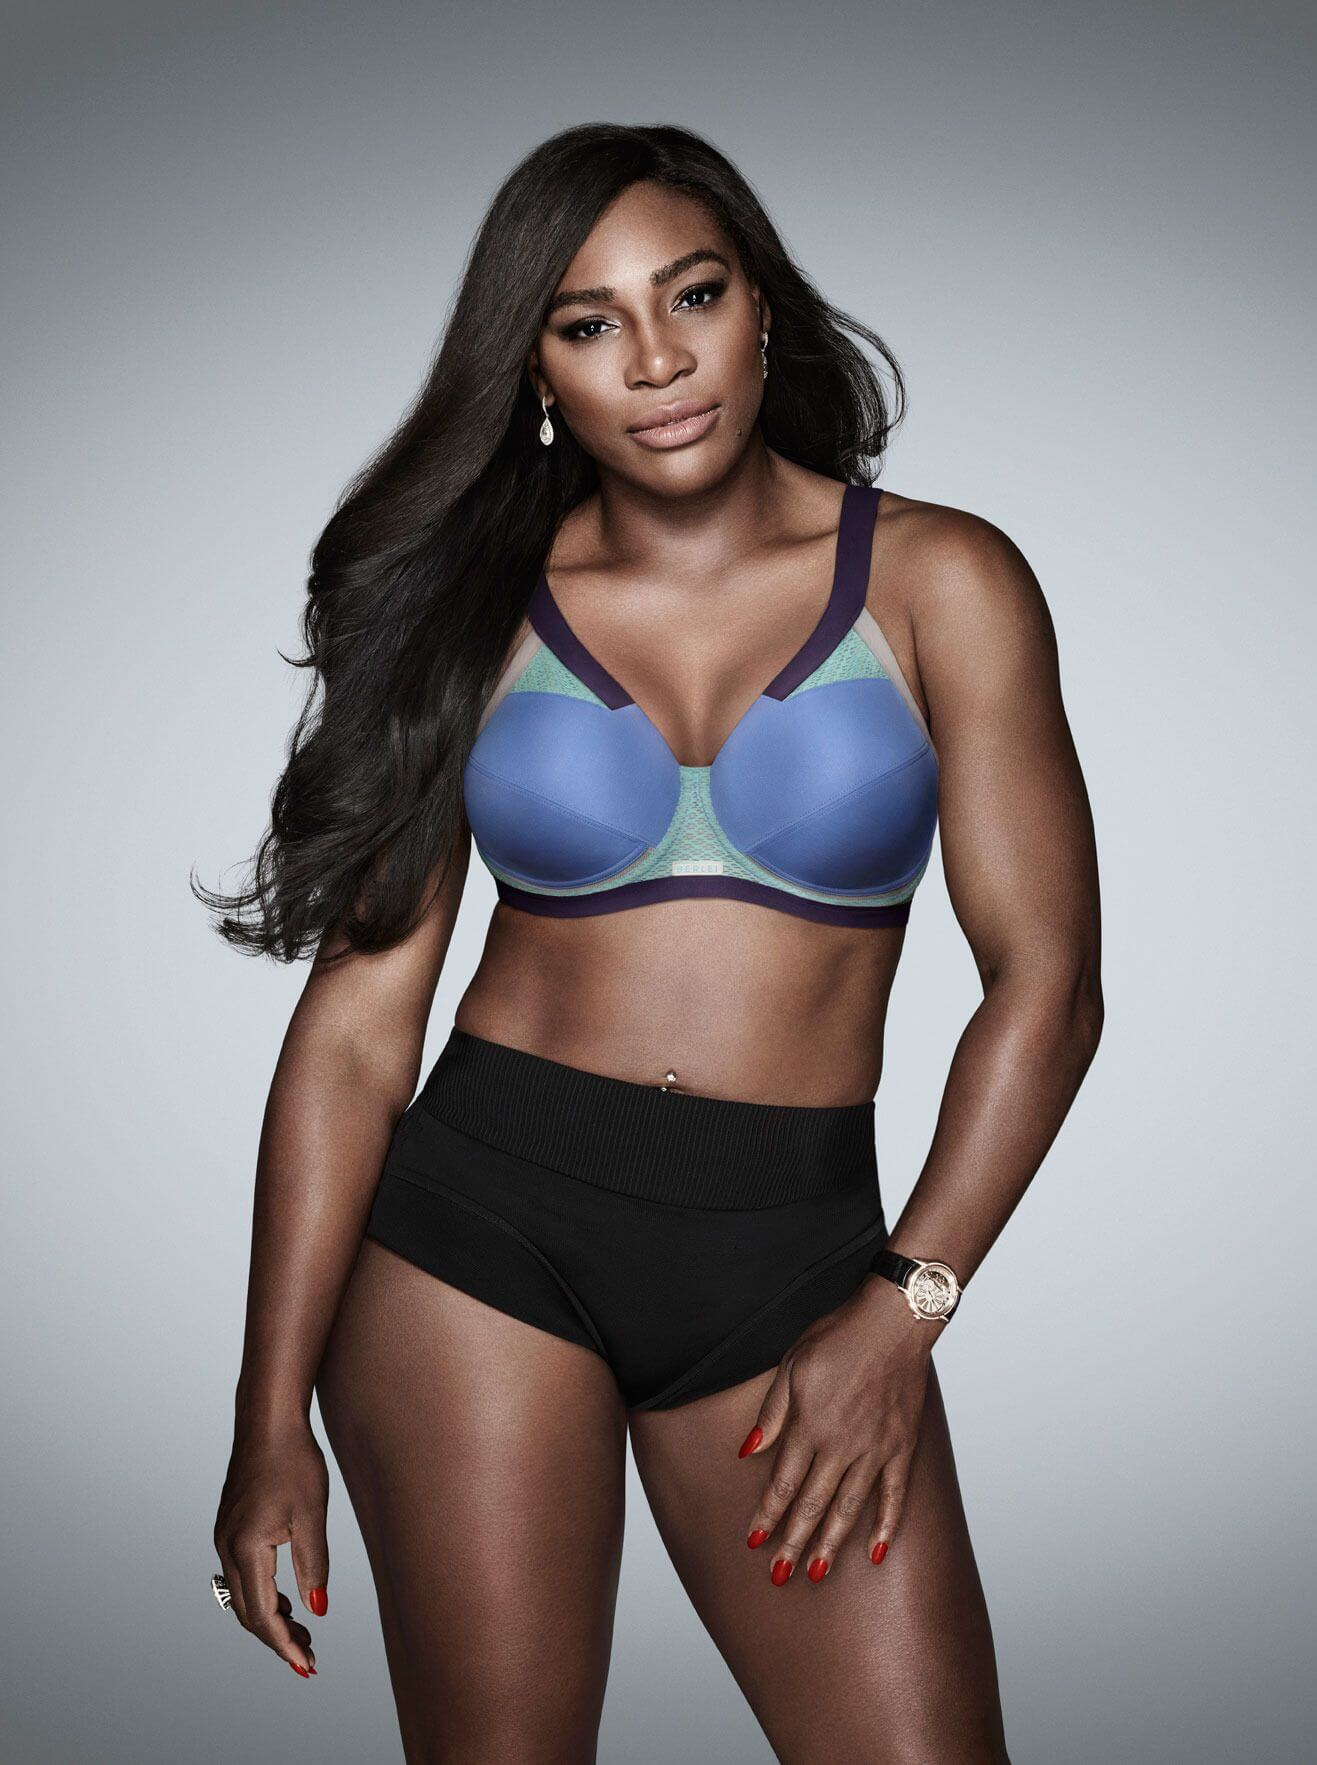 Serena Williams hot butts